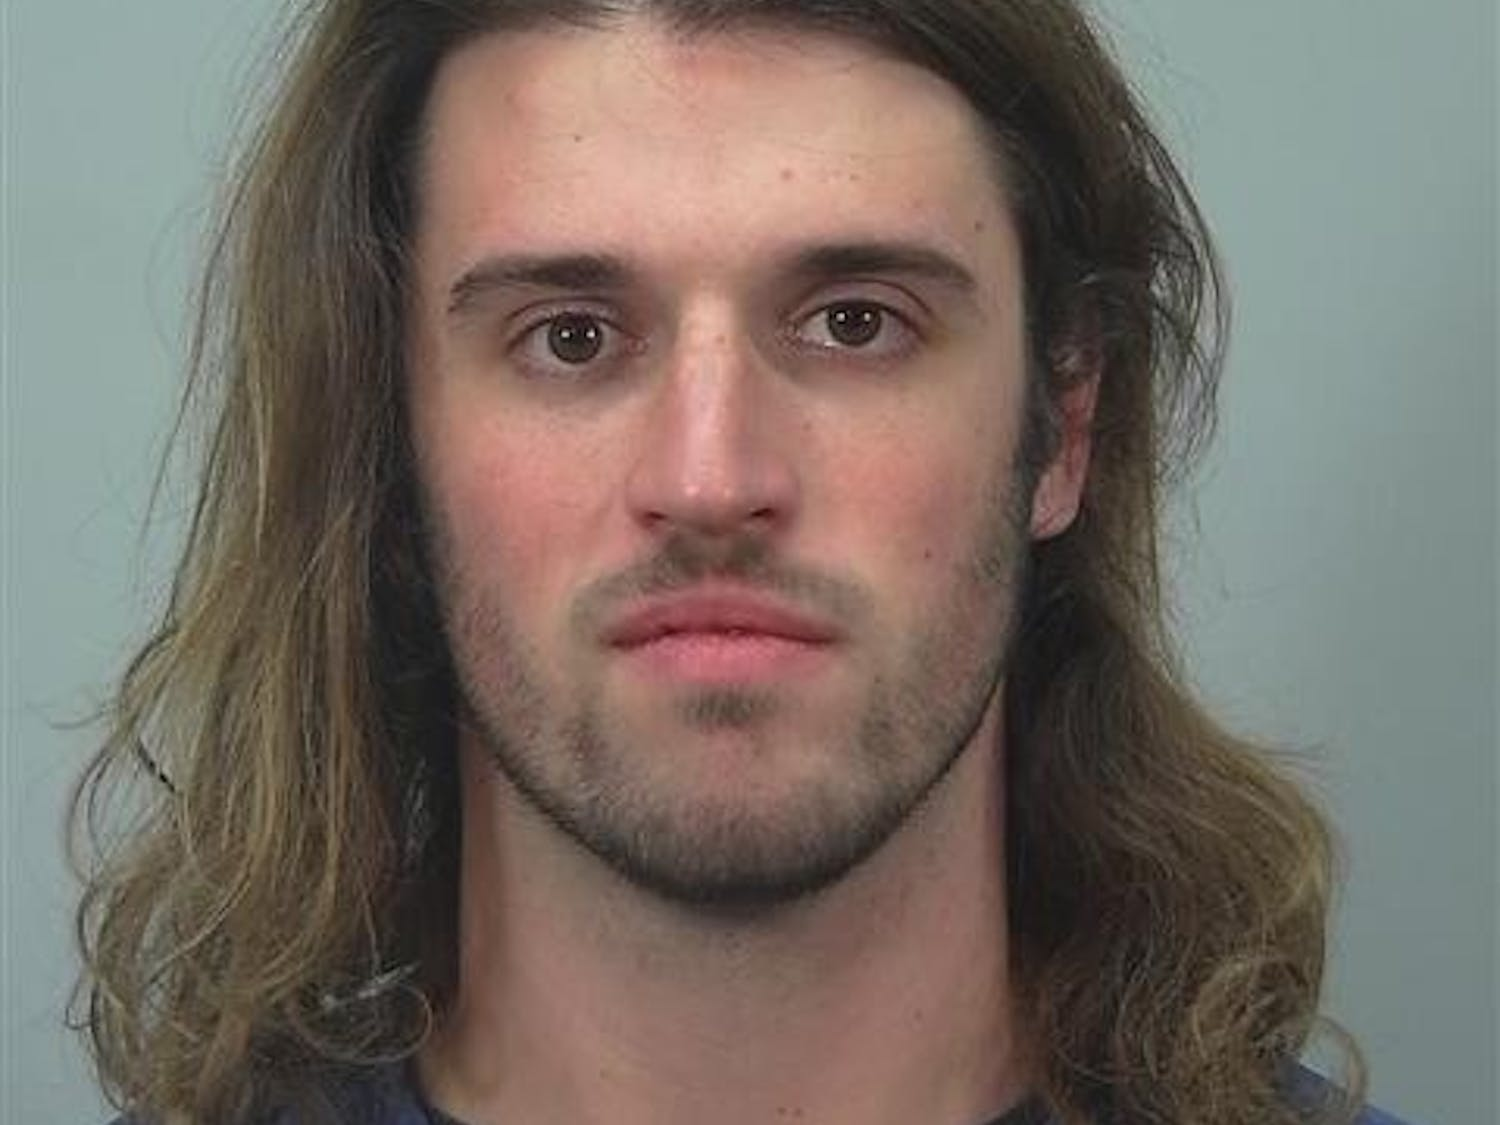 Suspended UW-Madison student Alec Cook will be released from jail Friday after he posted bail, which was set at $100,000.